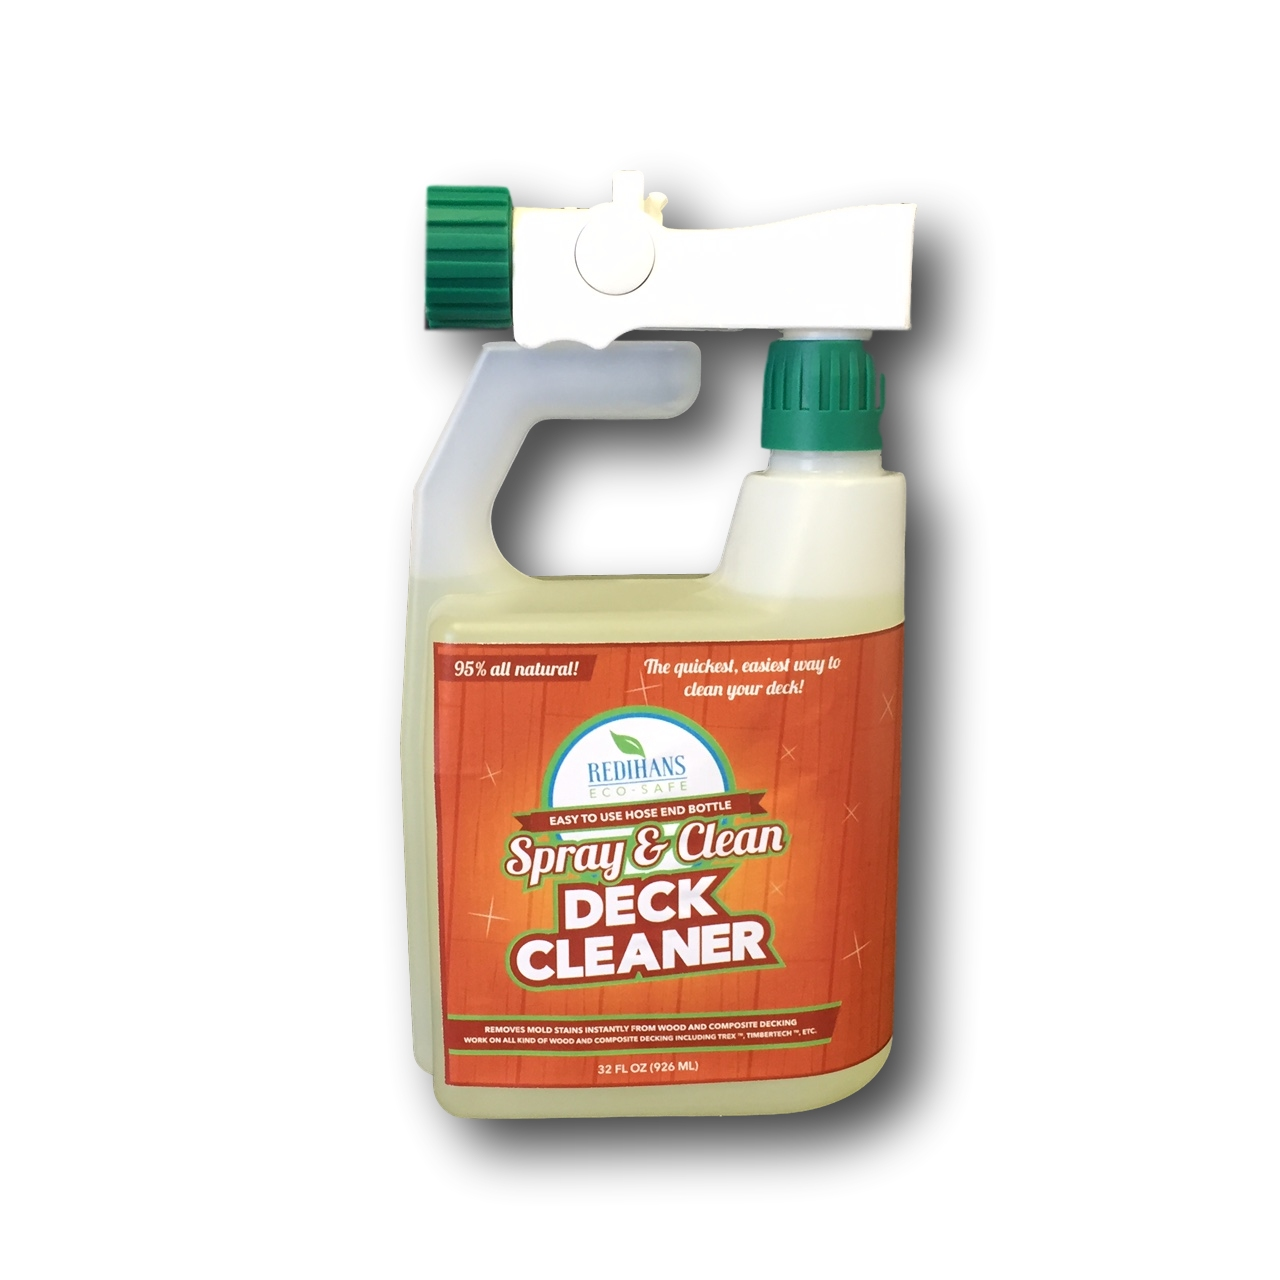 Redihans Eco-Safe Spray & Clean Deck Cleaner with Hose End Bottle